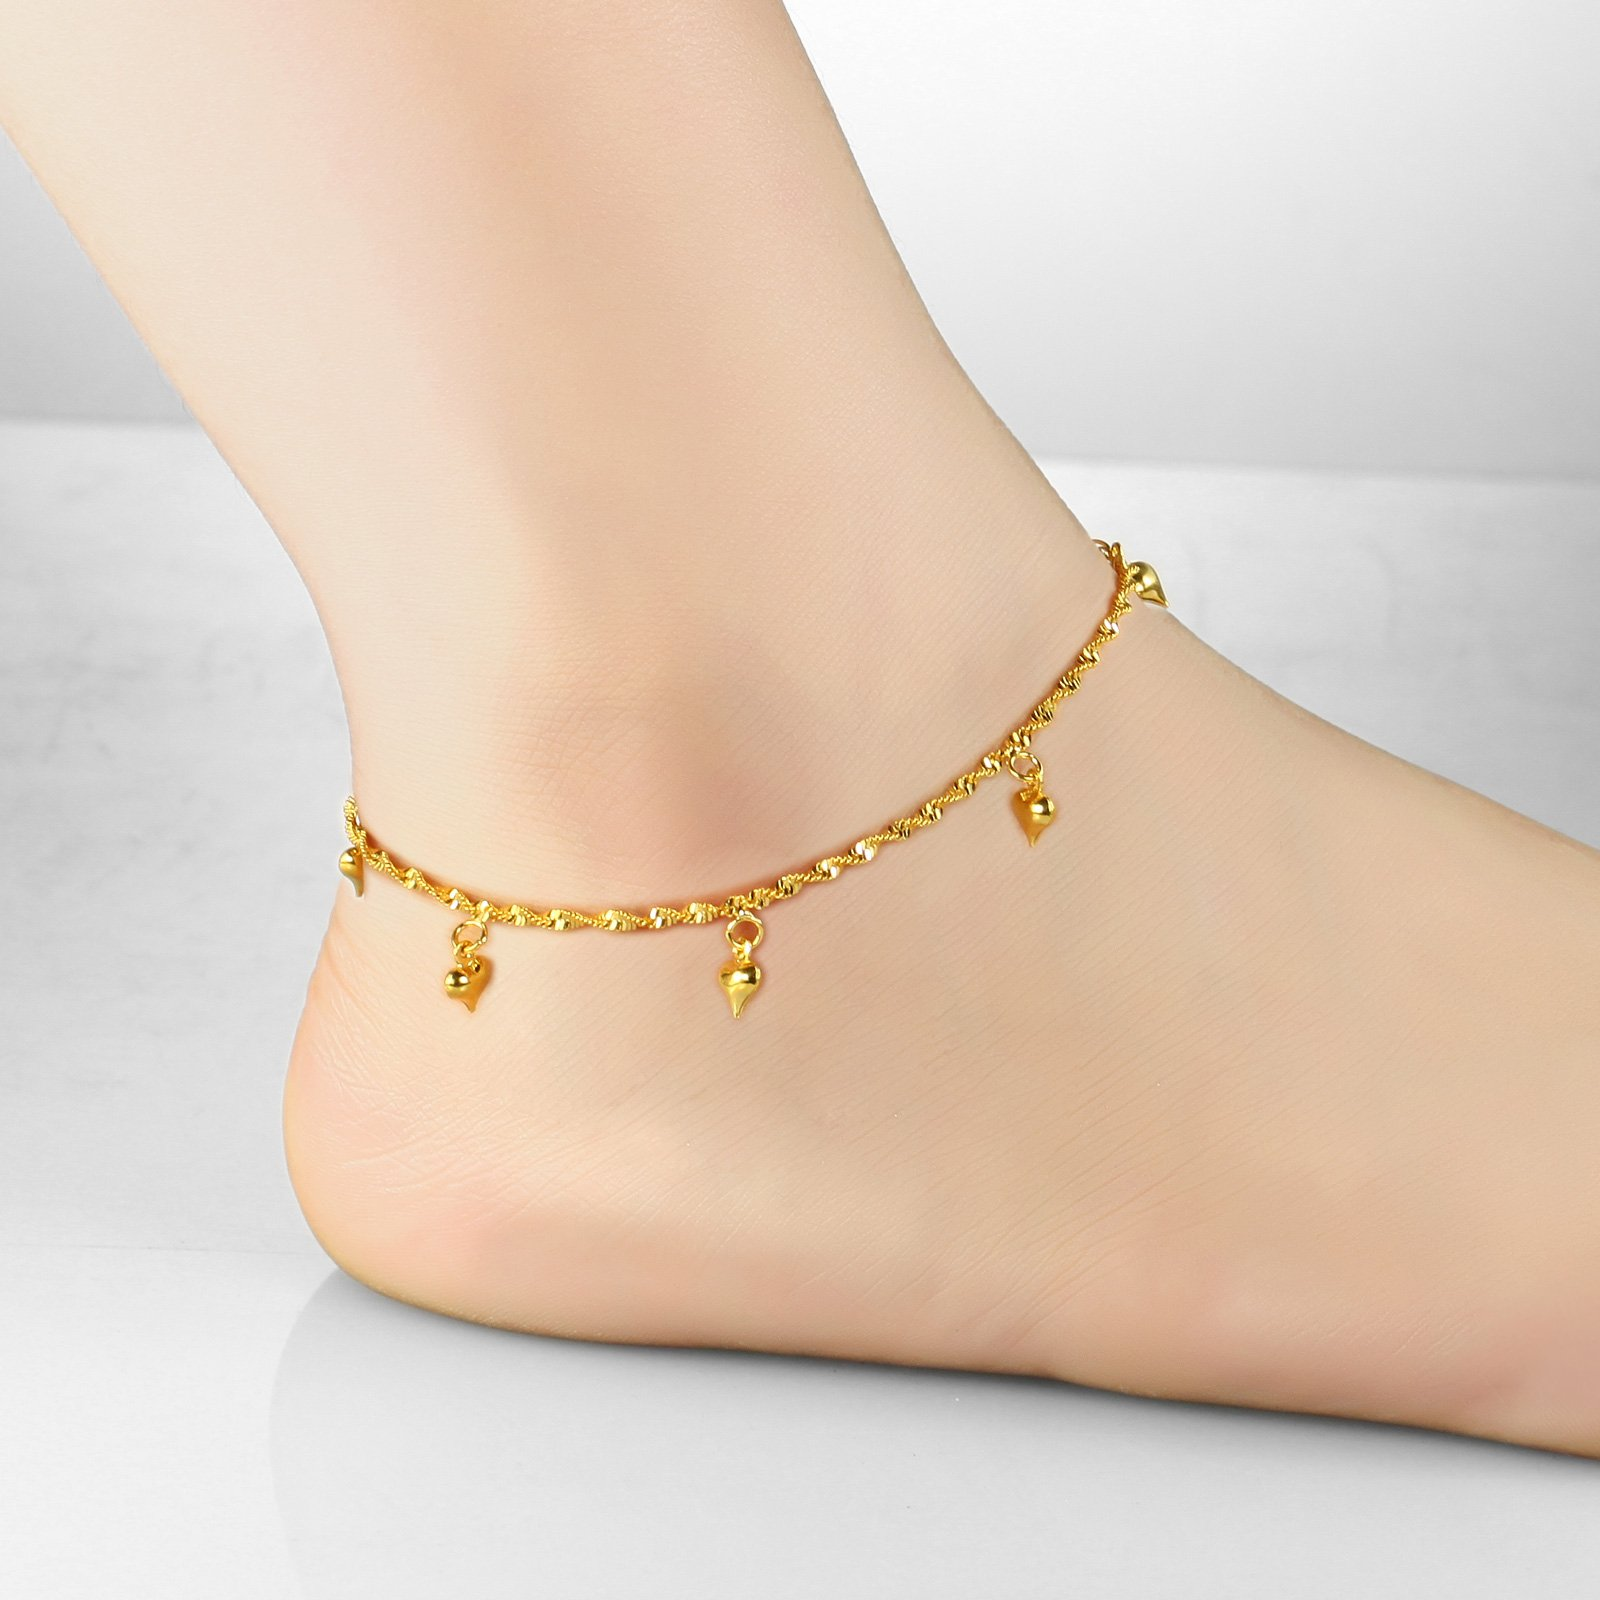 Women's Anklet Bracelet 18k Gold Plated Heart Tassel Pendants Foot Chain Summer Accessory Adjustable L9.7''